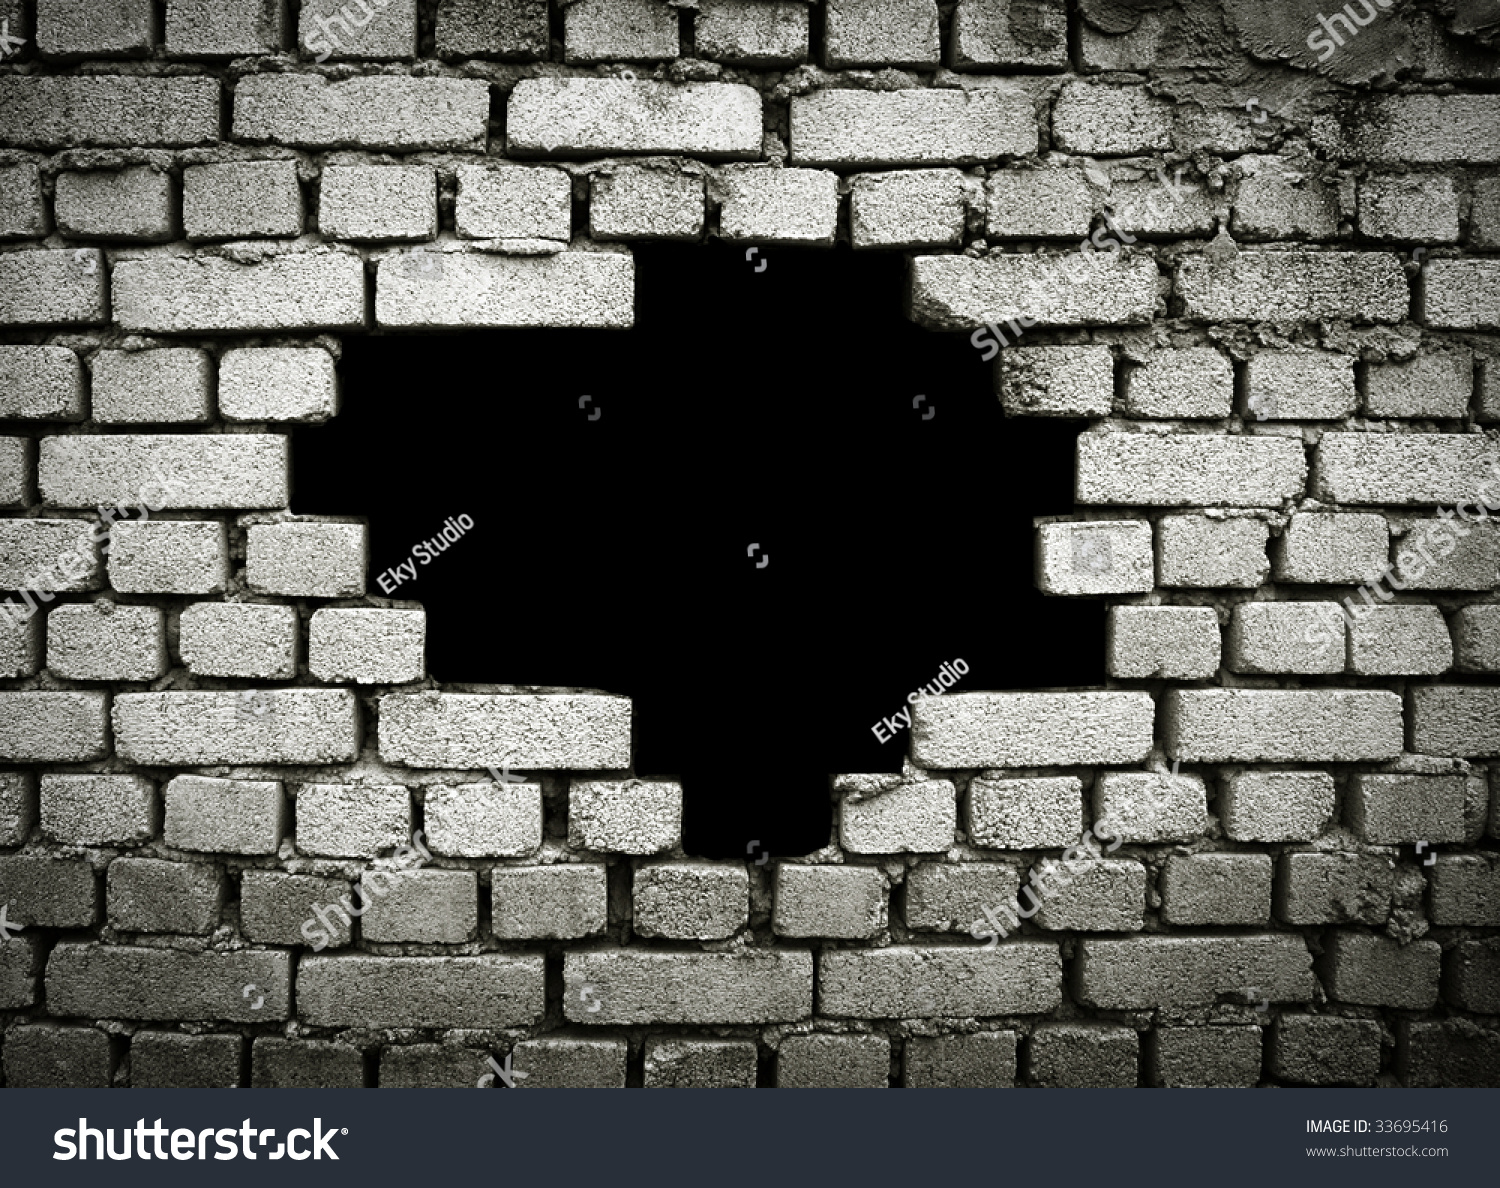 Cracked brick wall drawing brick wall - How To Draw A Cracked Brick Wall The Original Video